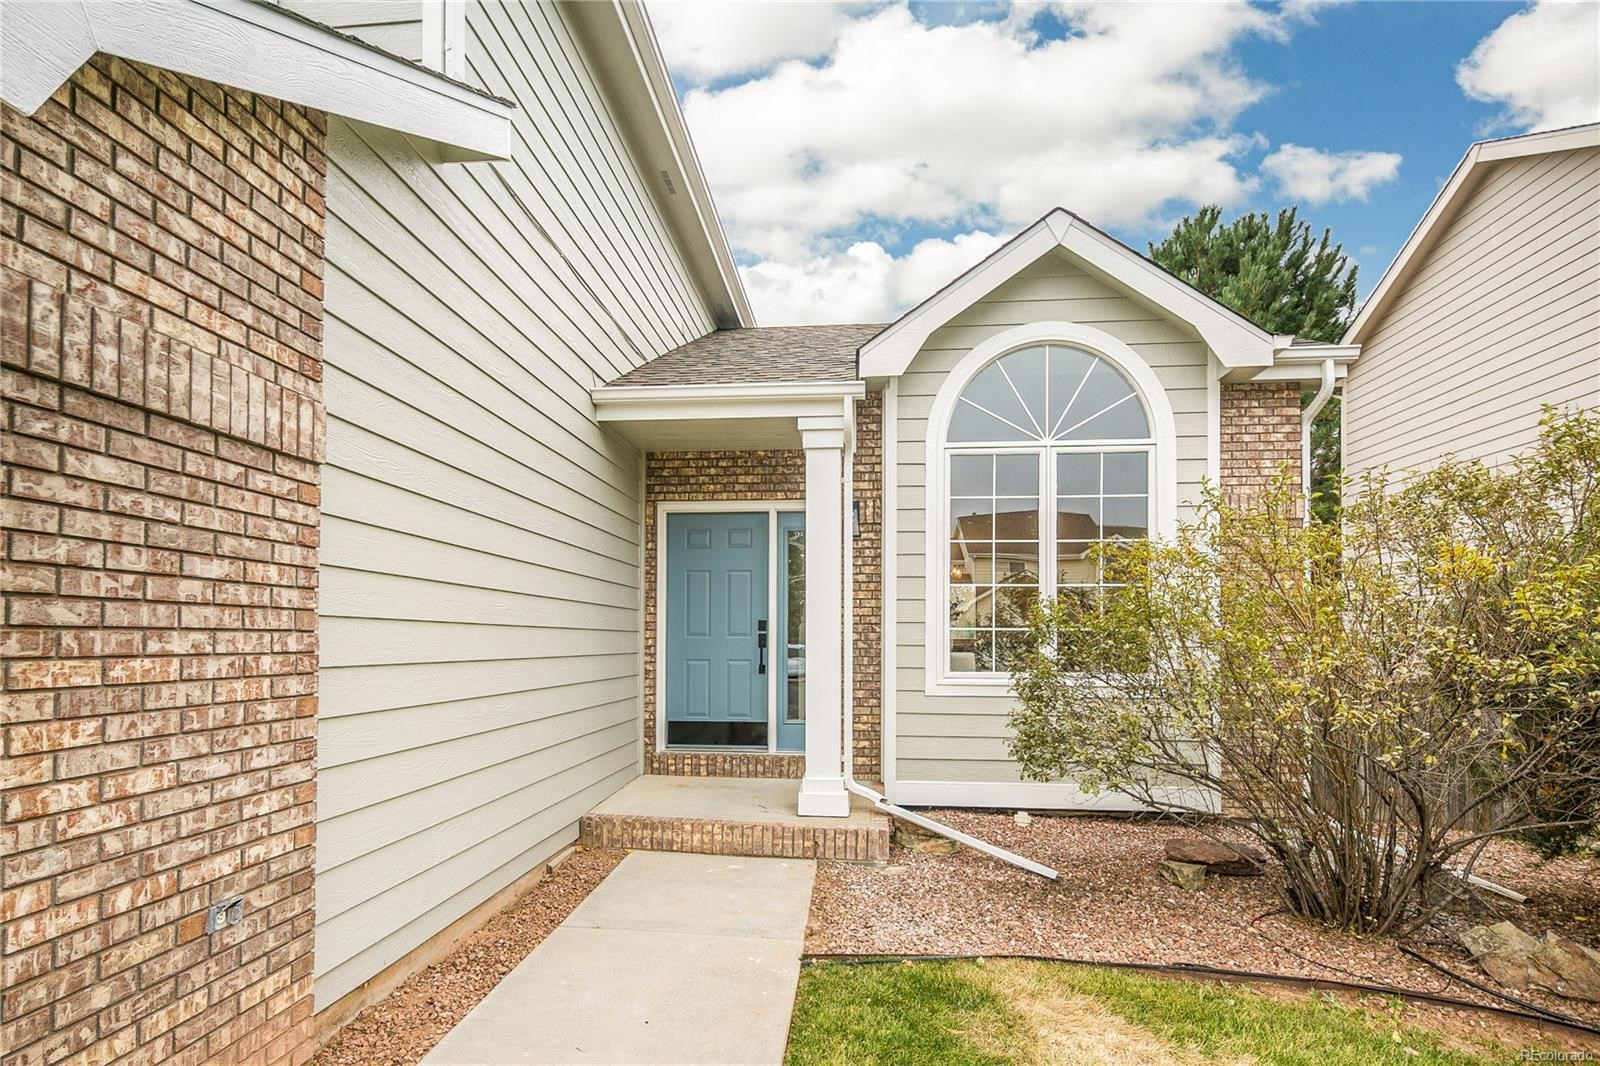 MLS# 9025718 - 3 - 4918 Smallwood Court, Fort Collins, CO 80528